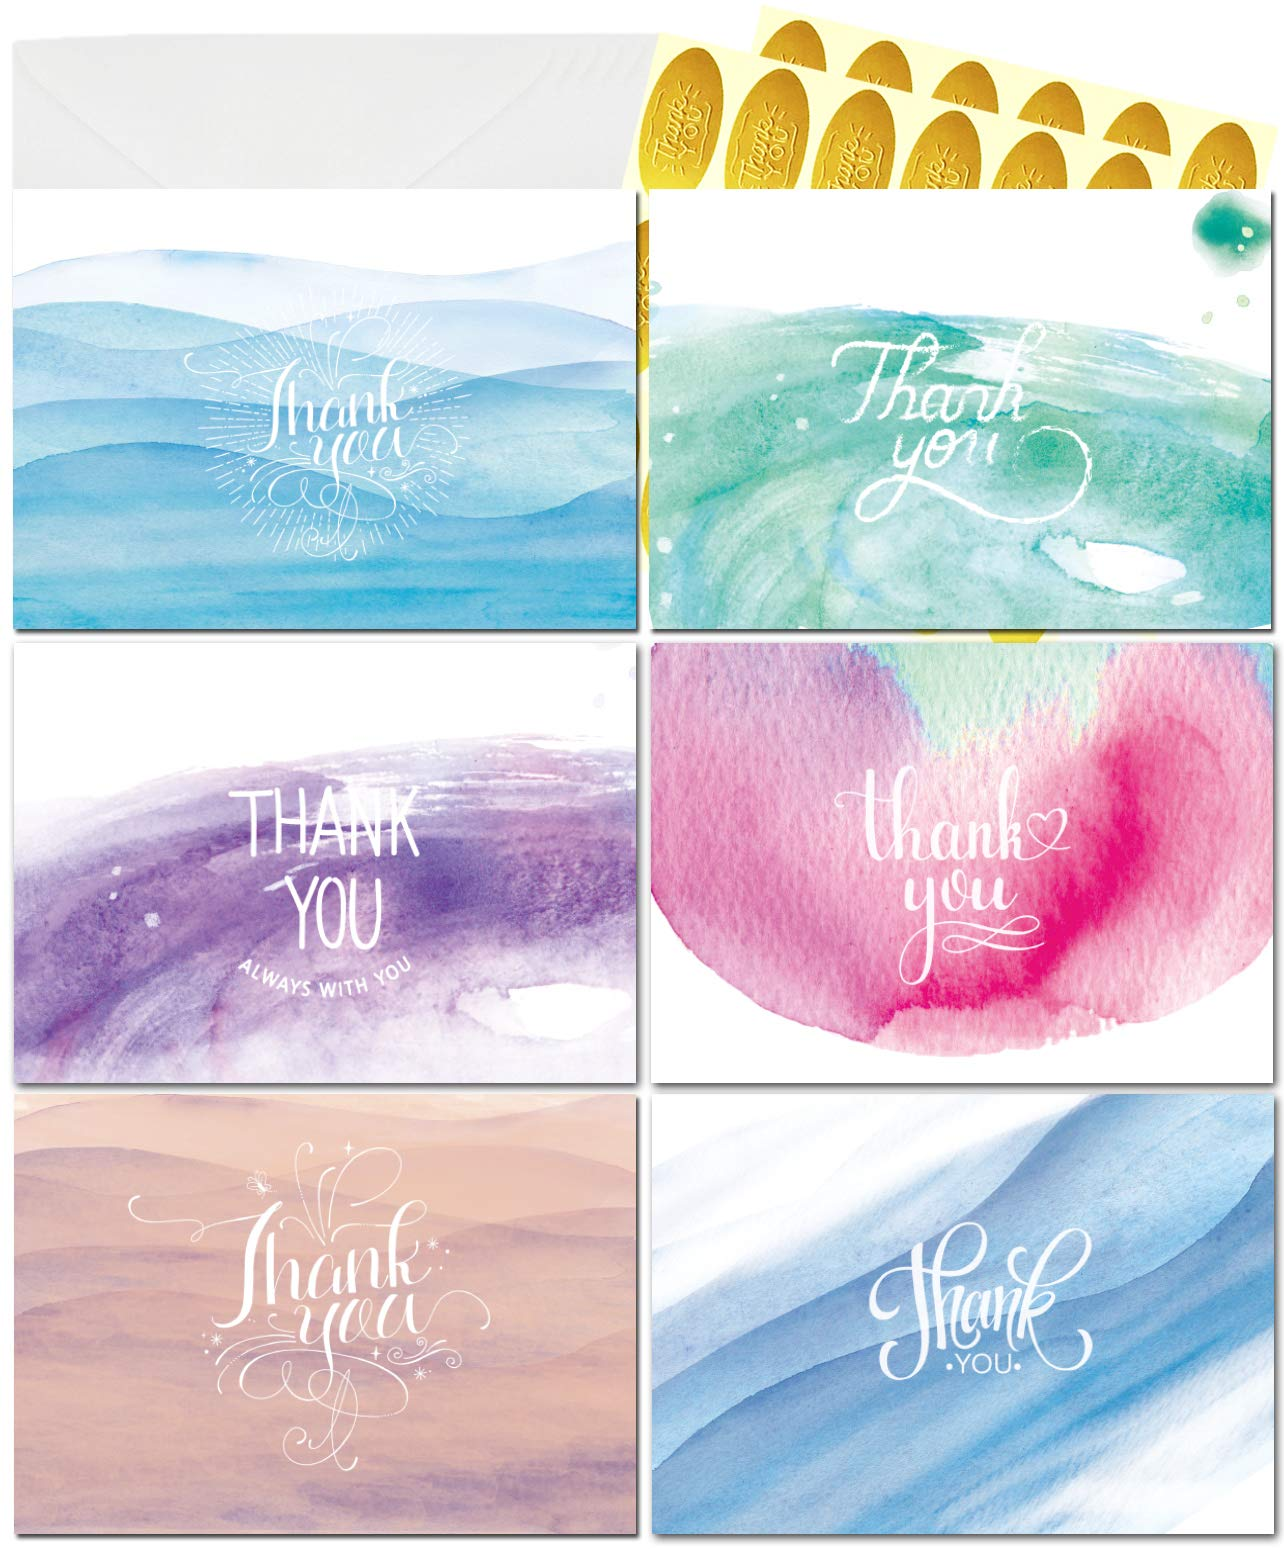 Qz Thank You Cards - 36 Watercolor Thank You Notes, Bulk Boxed Set - Blank on the Inside - Beautiful Cute Designs - Envelopes and Golden Sticker Included, 4 x 6 Inches Size - Perfect for Any Occasions